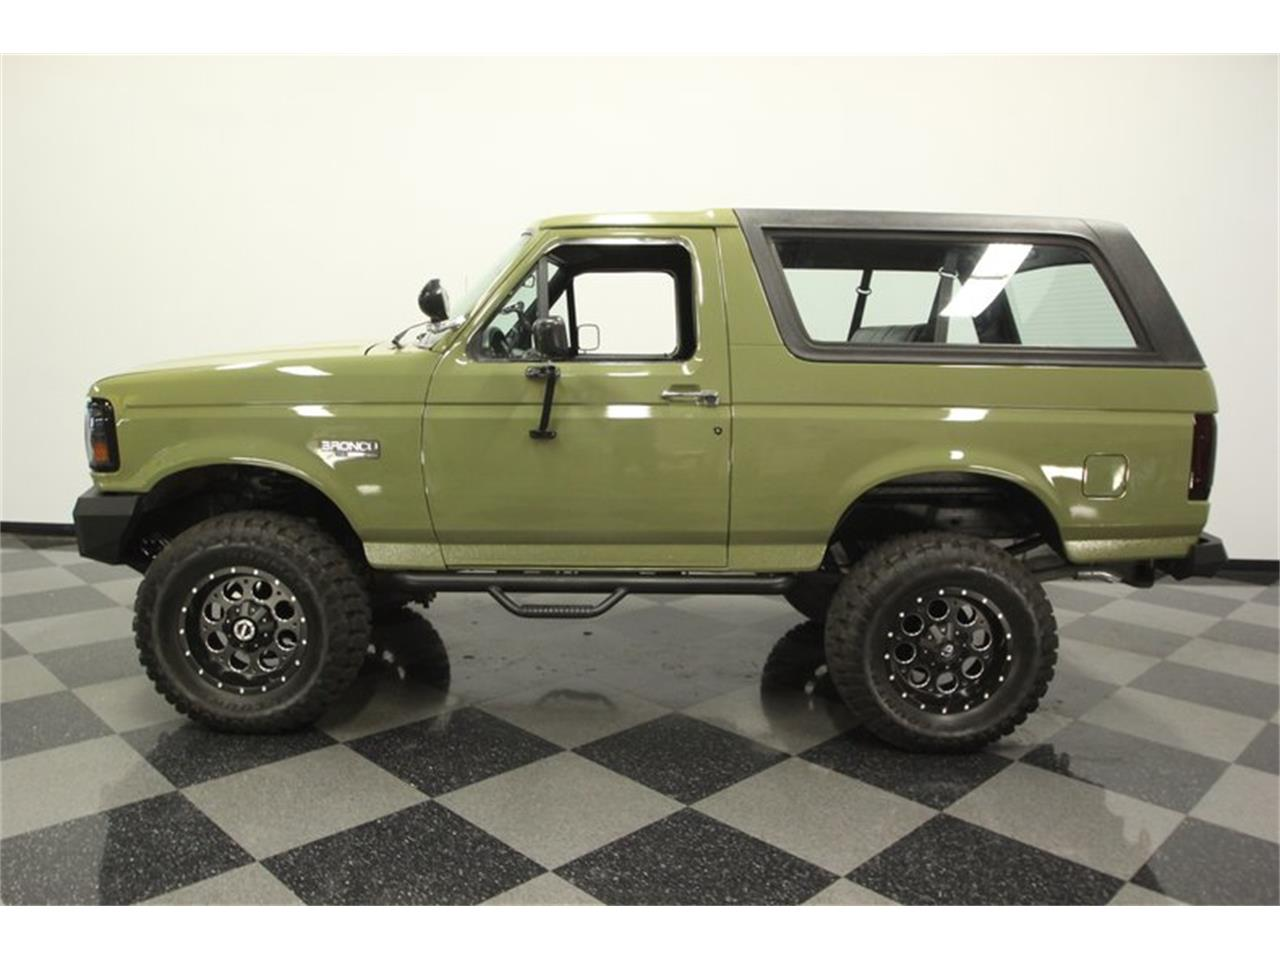 1996 Ford Bronco for sale in Lutz, FL – photo 2